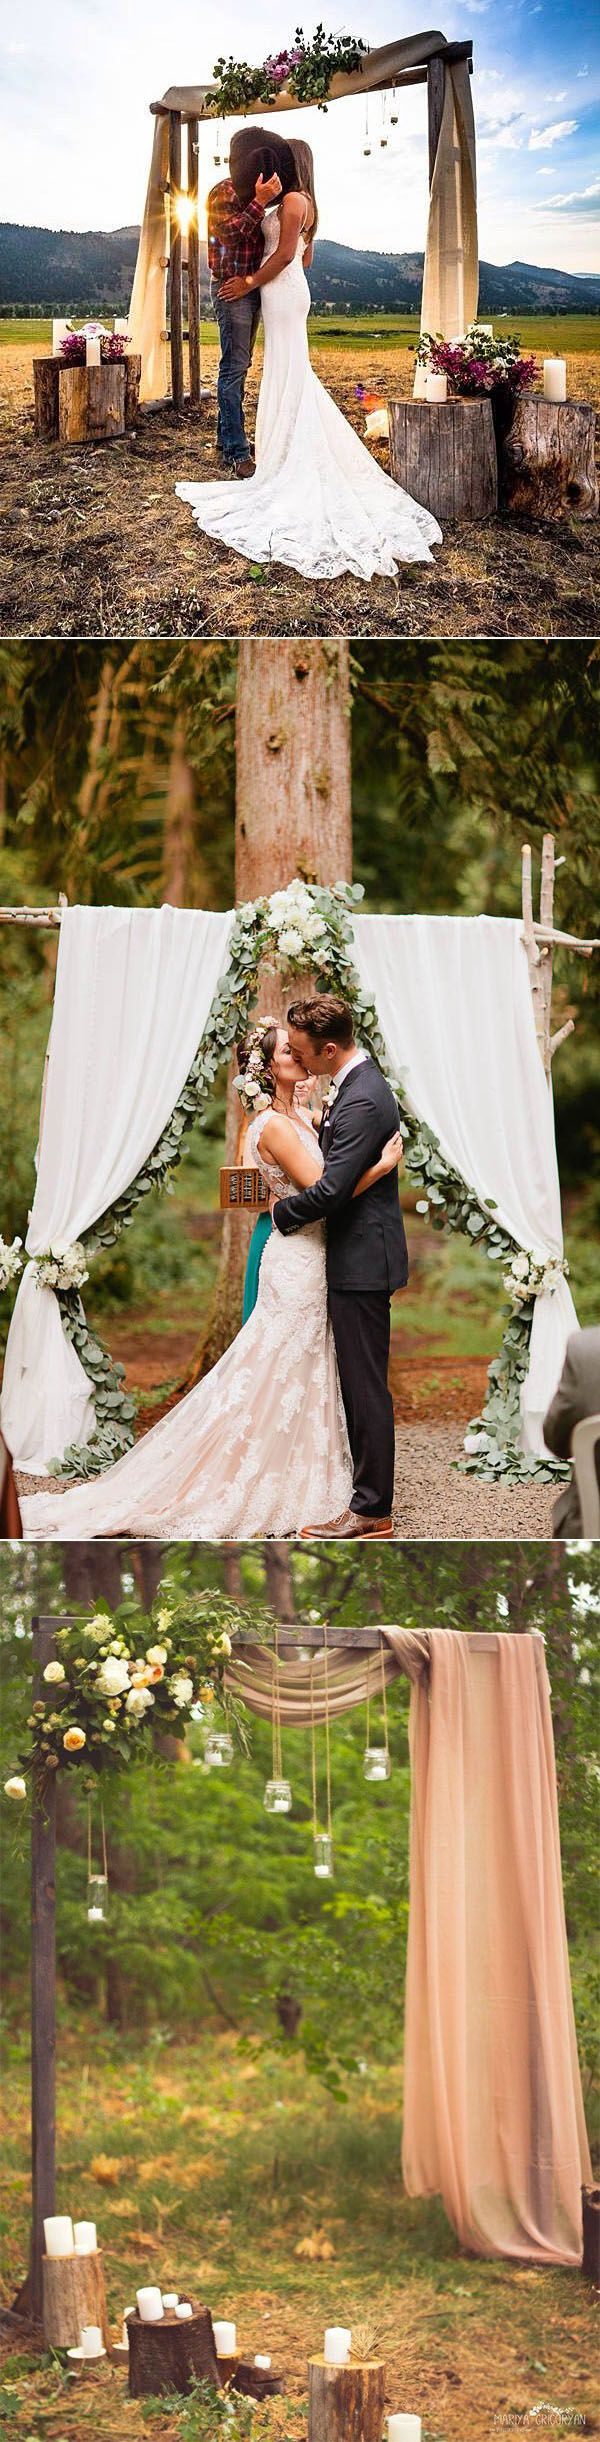 25 Chic And Easy Rustic Wedding Arch Ideas For Diy Brides Weddings